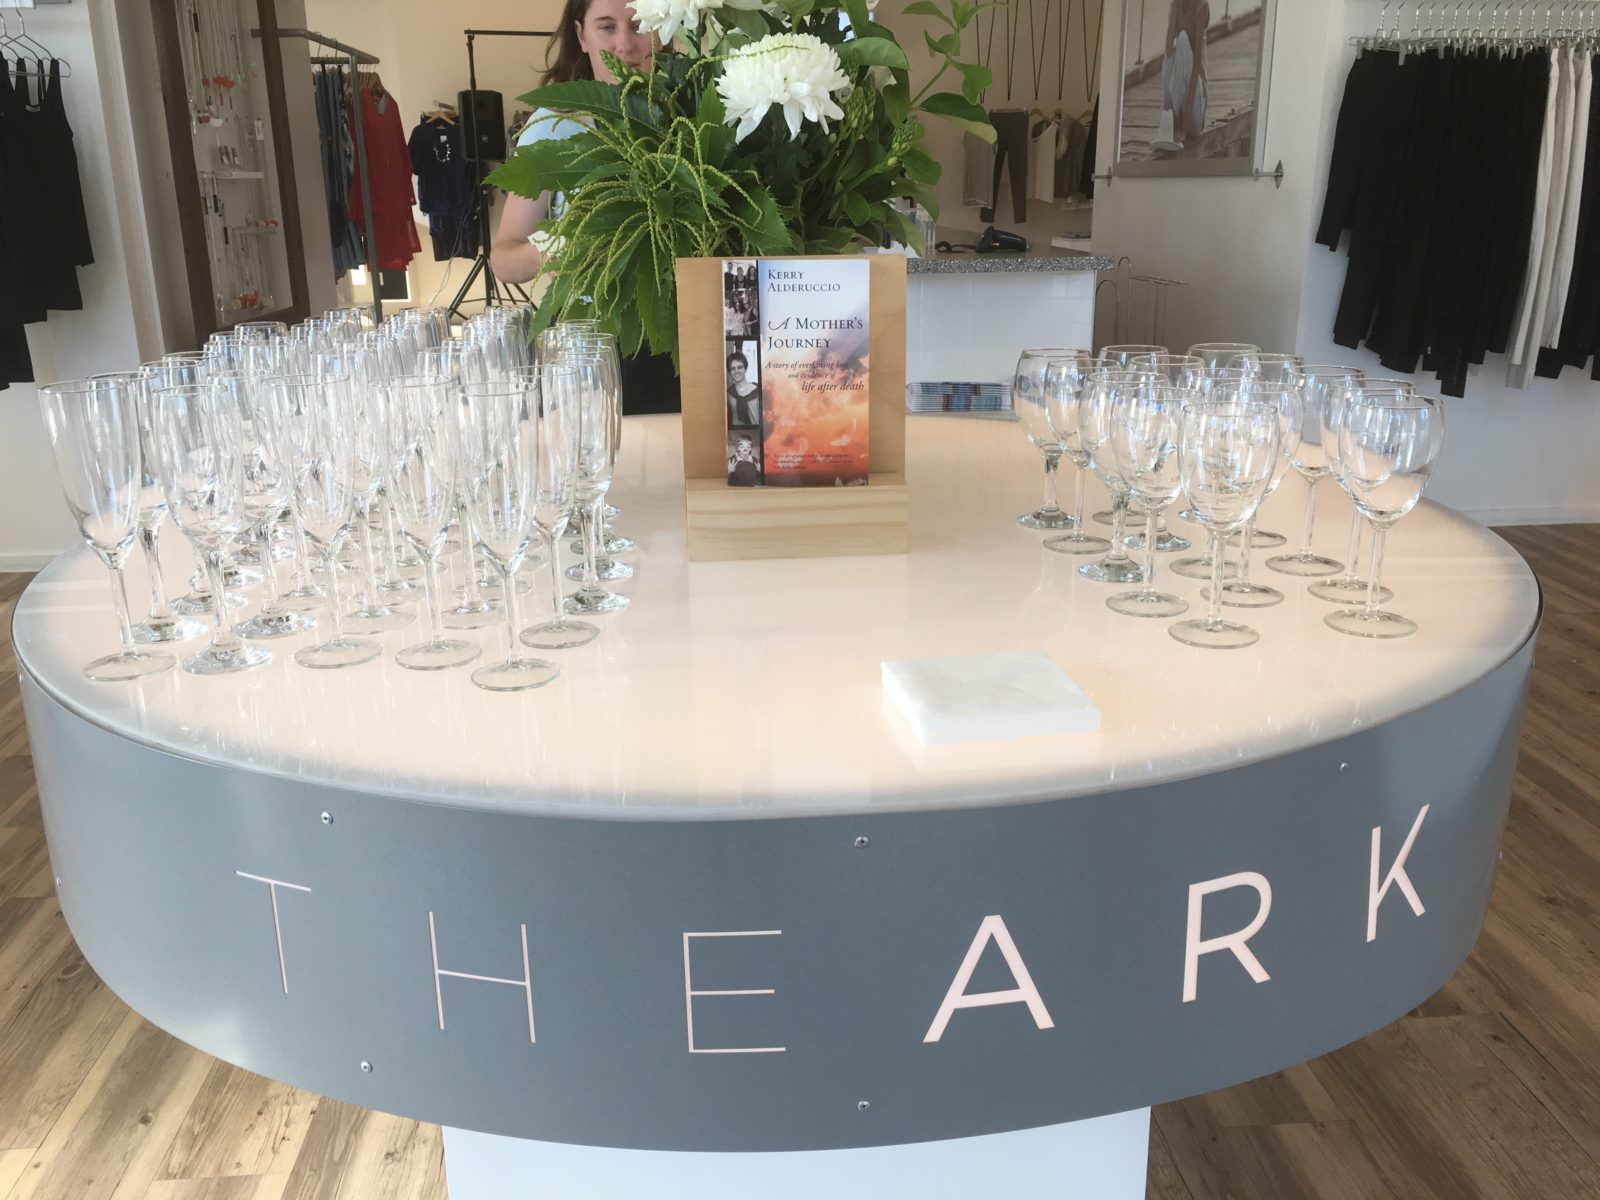 The welcoming display at The Ark for the conversations evening with Kerry Alderuccio